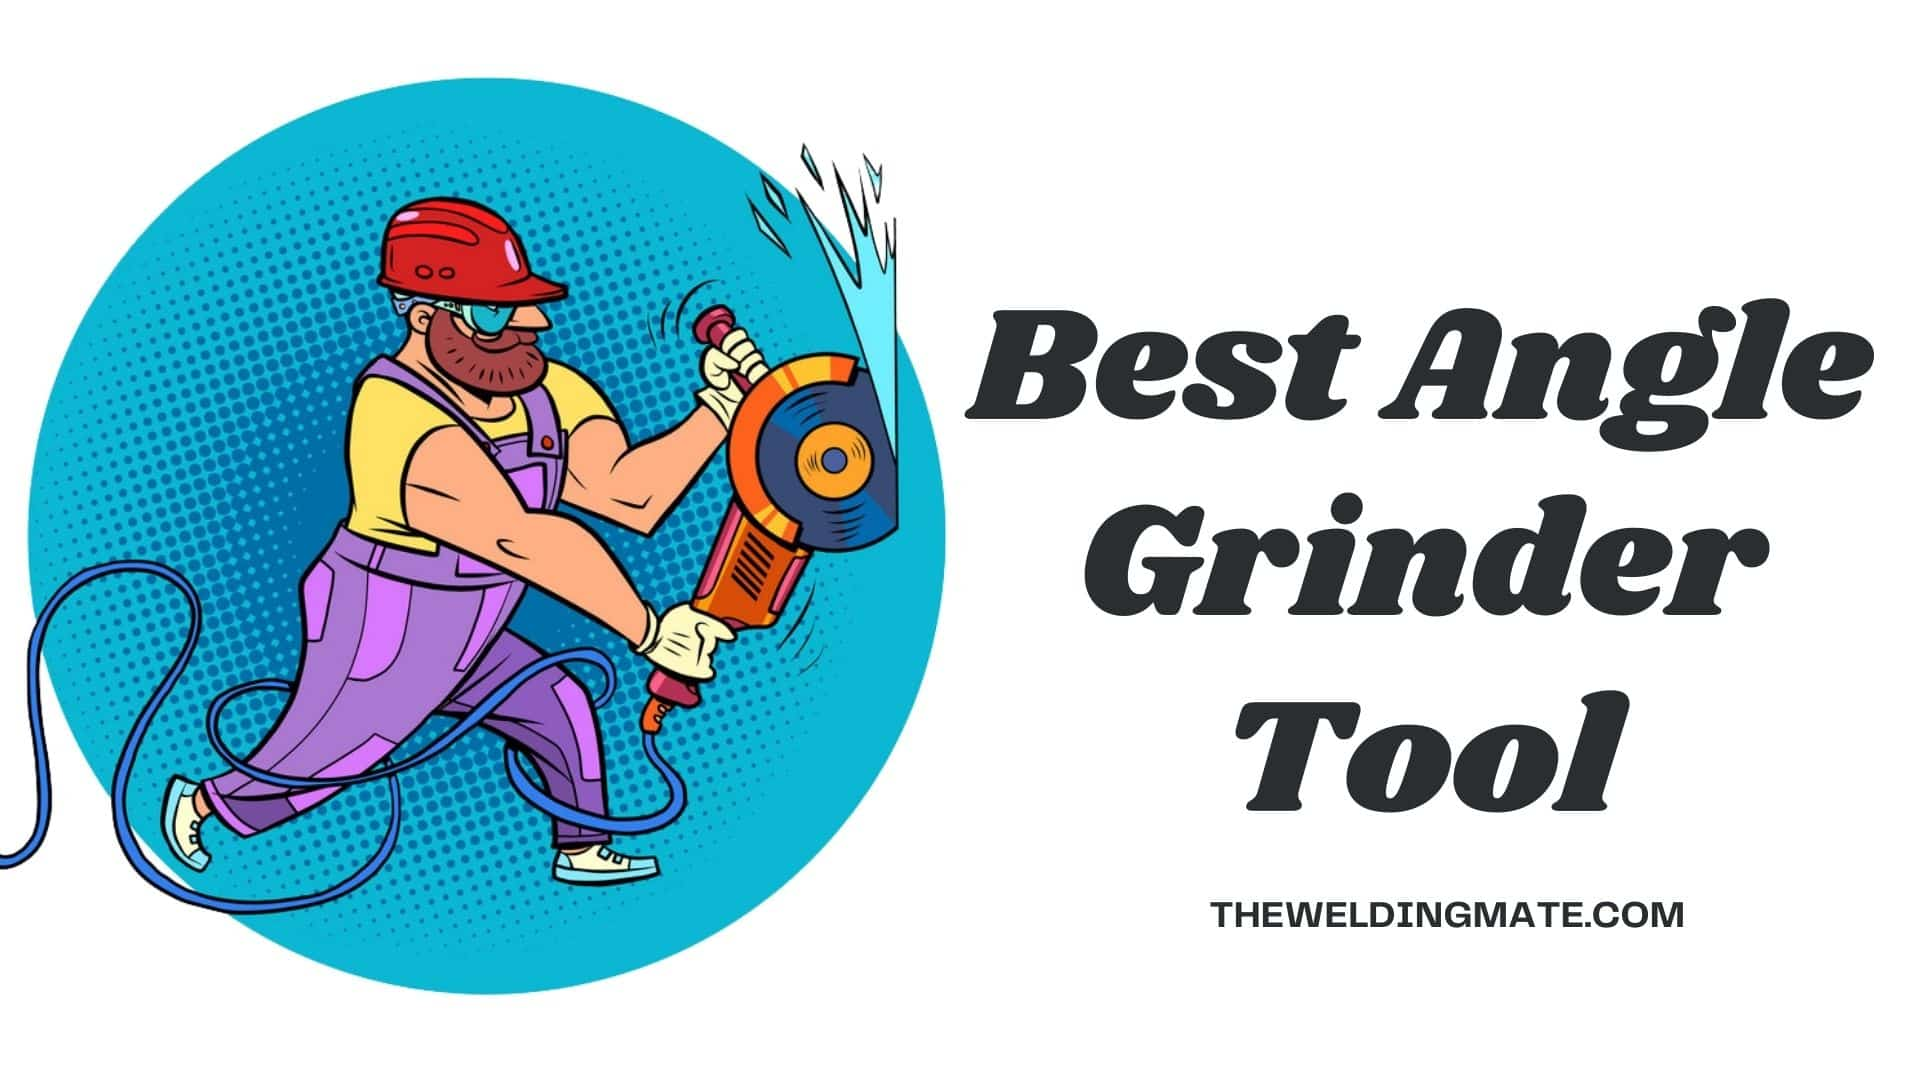 Best Angle Grinder Tool